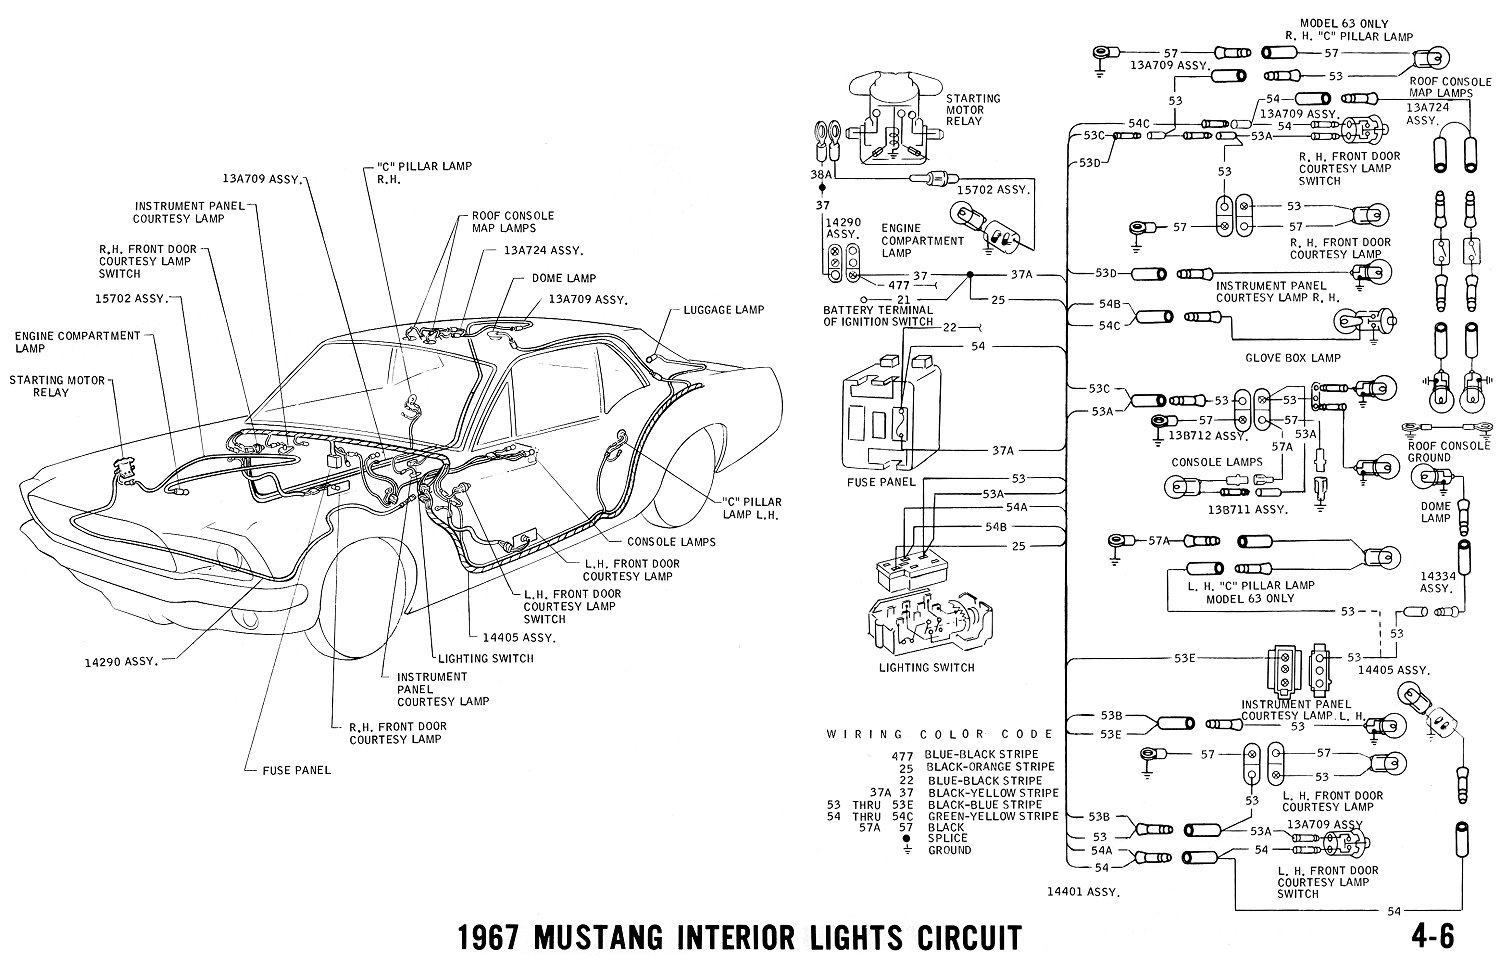 1967 Cougar Wiring Diagram Libraries 87 Mustang Main Harness 67 Todays1967 Fuse Box Diagrams Electrical Mercury